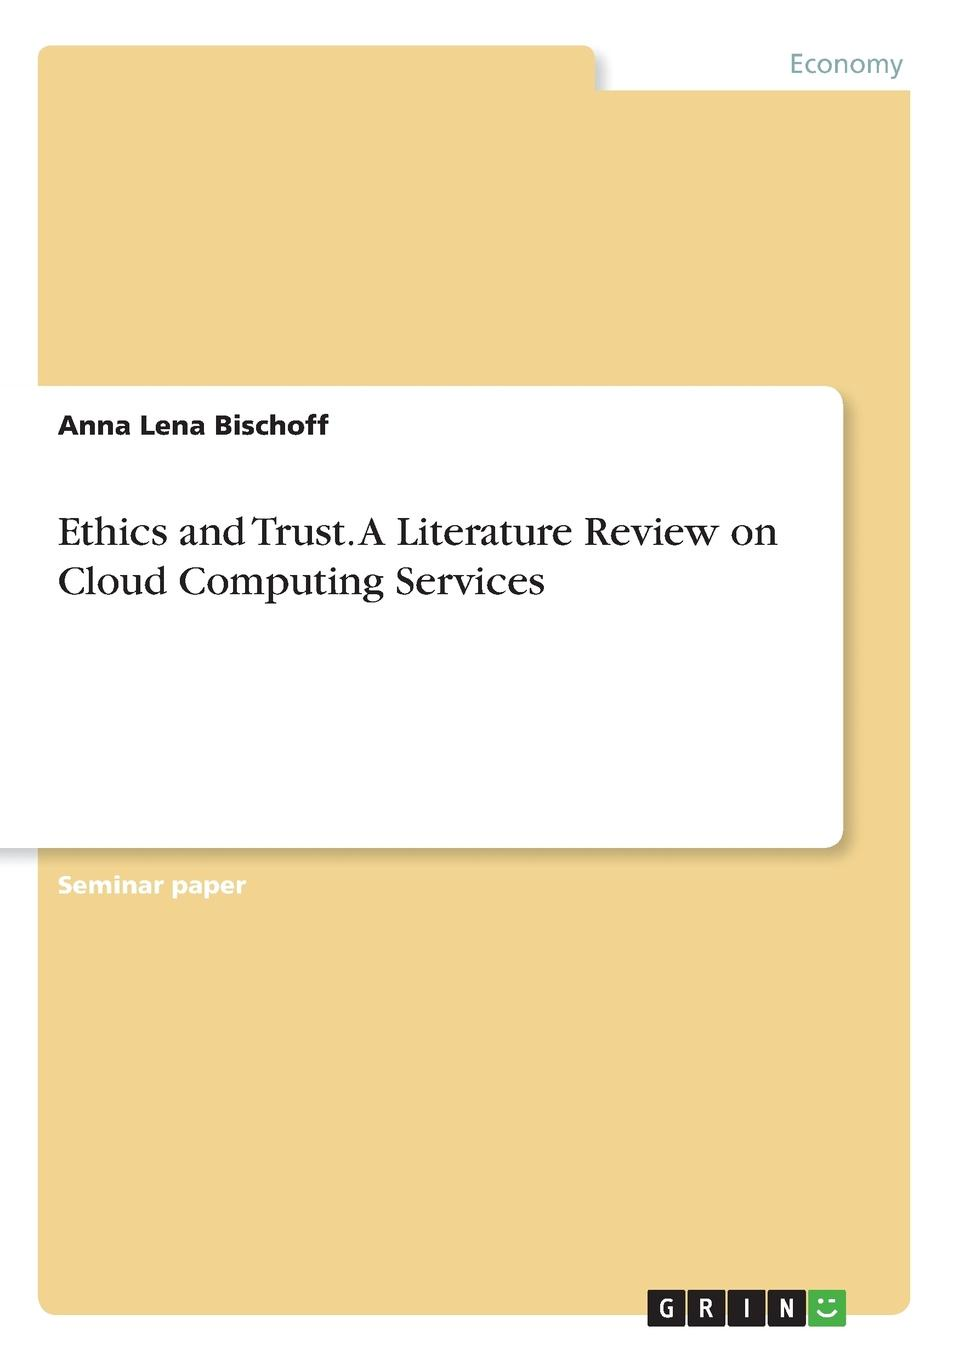 Anna Lena Bischoff Ethics and Trust. A Literature Review on Cloud Computing Services rodney heisterberg creating business agility how convergence of cloud social mobile video and big data enables competitive advantage